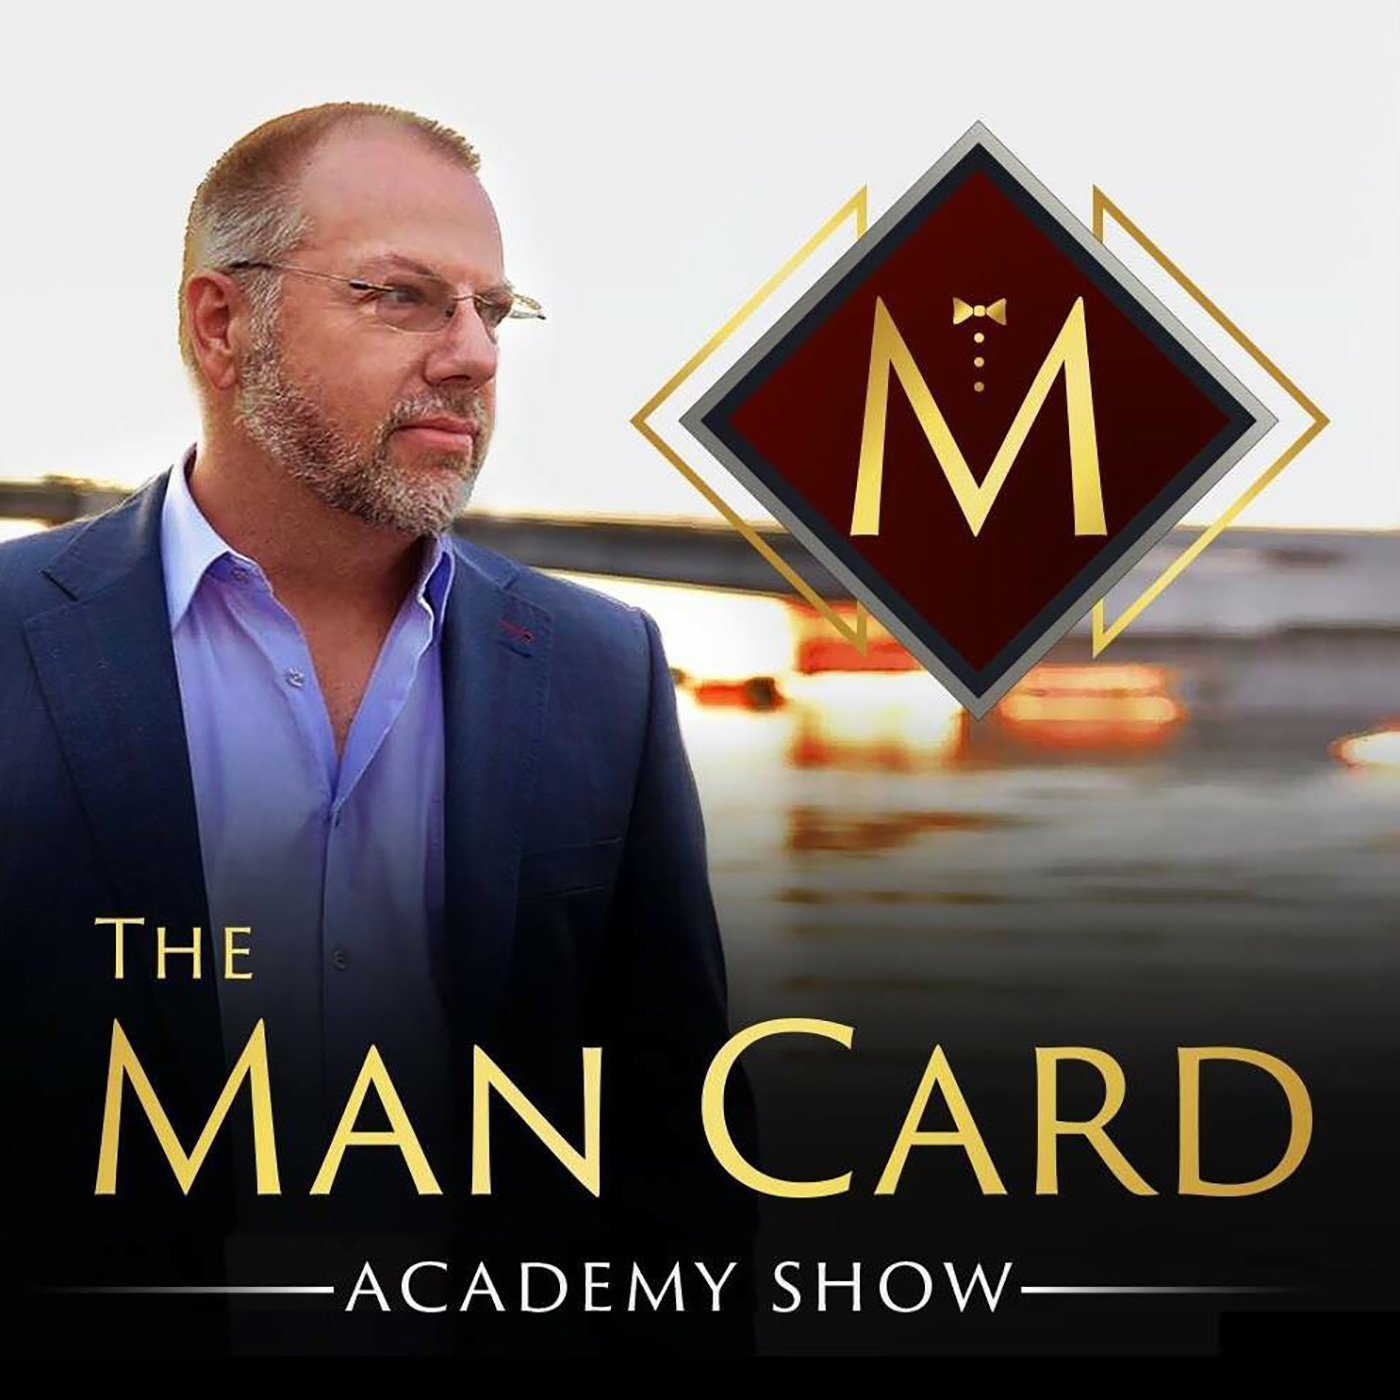 The Man Card Academy Show: Unapologetically Masculine